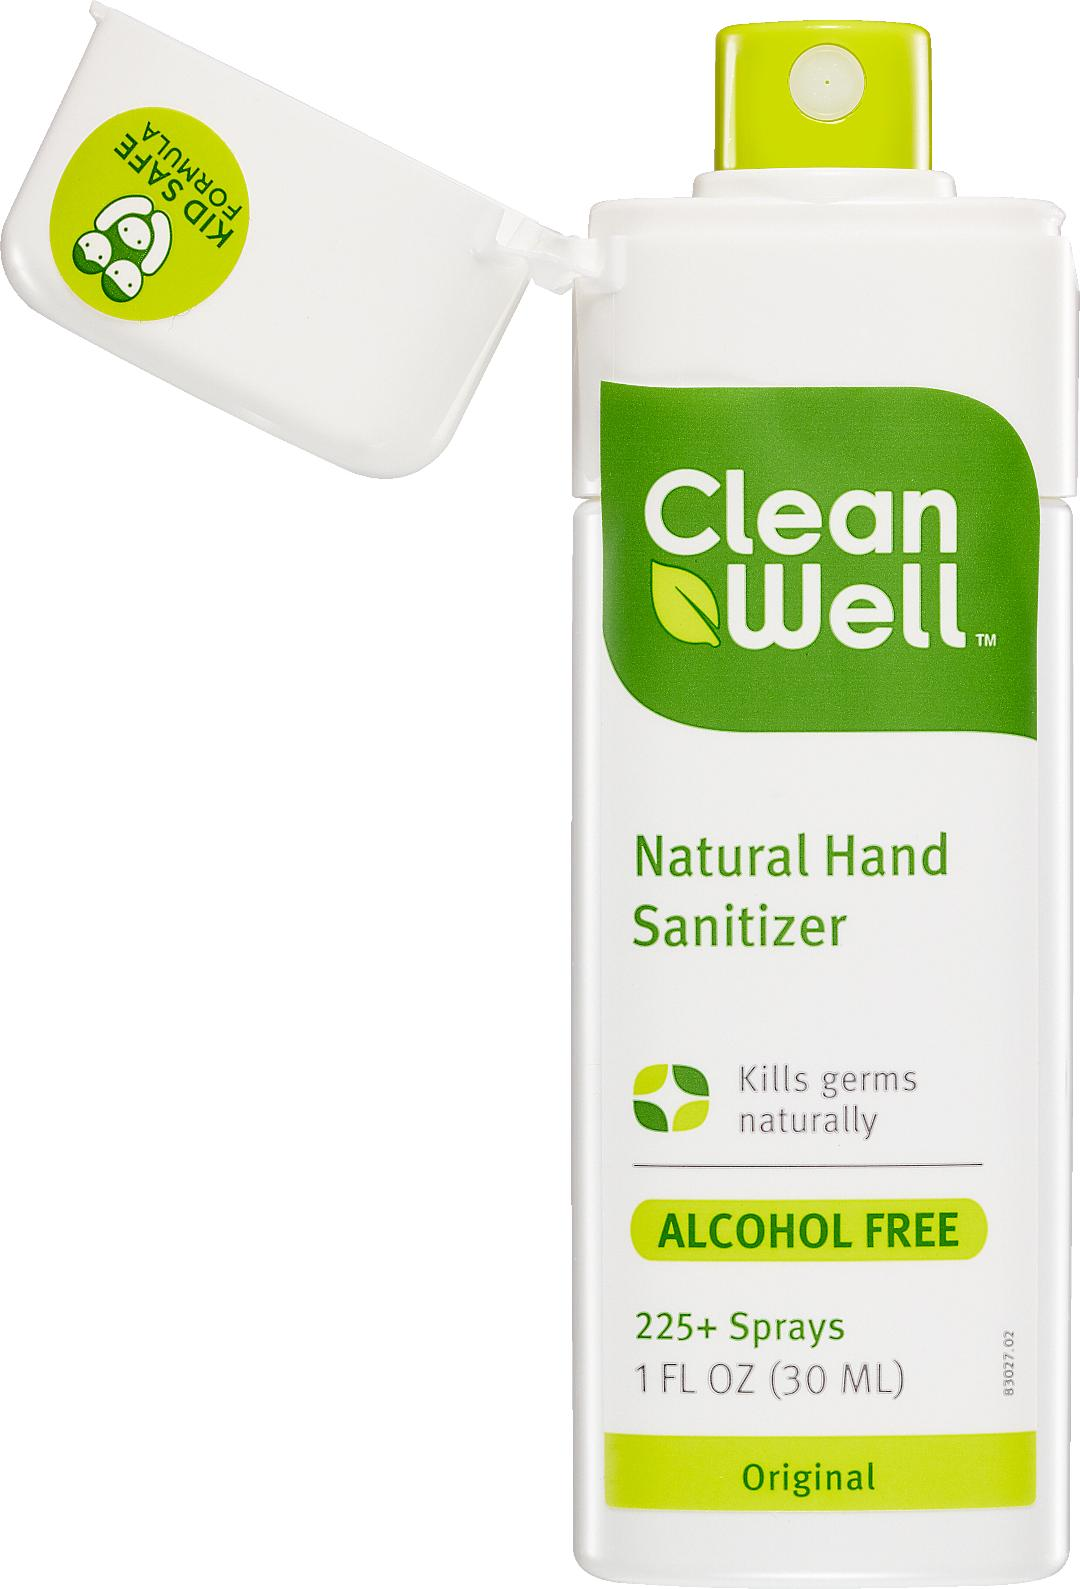 When raising young children, the concern of catching the flu is at an all-time high. Although kids can't completely avoid germ-hubs like school, activity centers, daycare, etc., there are natural products that protect from daily germs and leave your children's hands free of harmful chemicals and the strong smell of alcohol.CleanWell's 1 fl oz. Botanical Hand Sanitizer Spray and Wipes, which kills germs with a proprietary, naturally antibacterial formulation based on thymol.